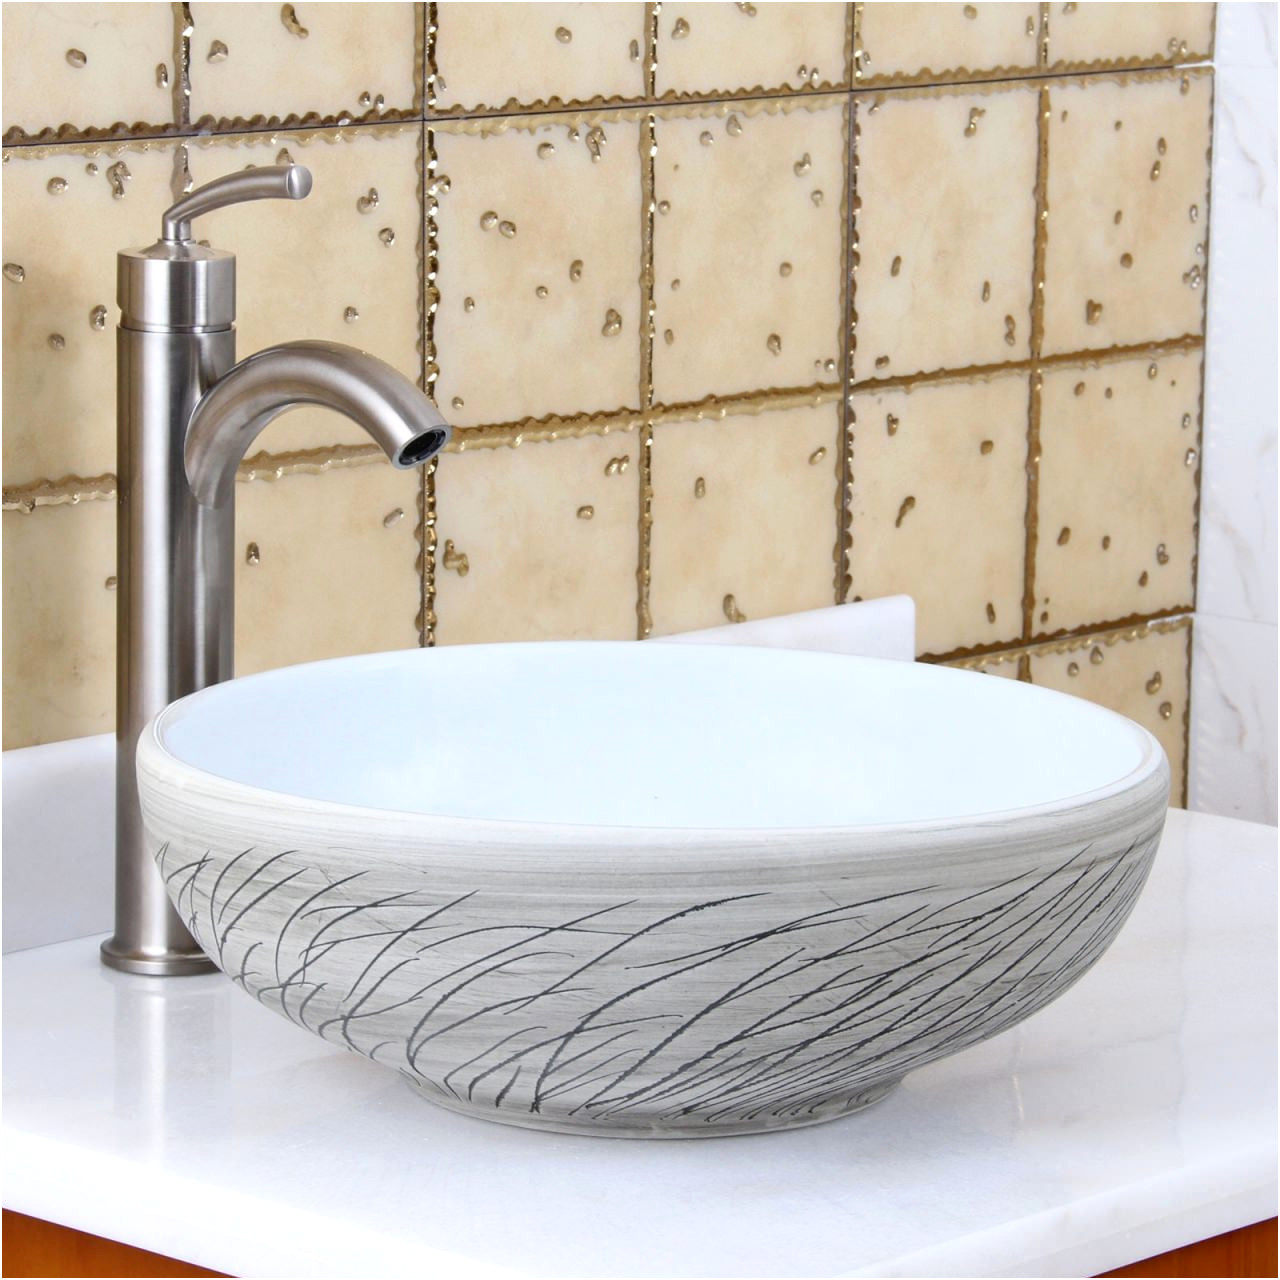 Beautiful Mosaic Sinks for Bathrooms